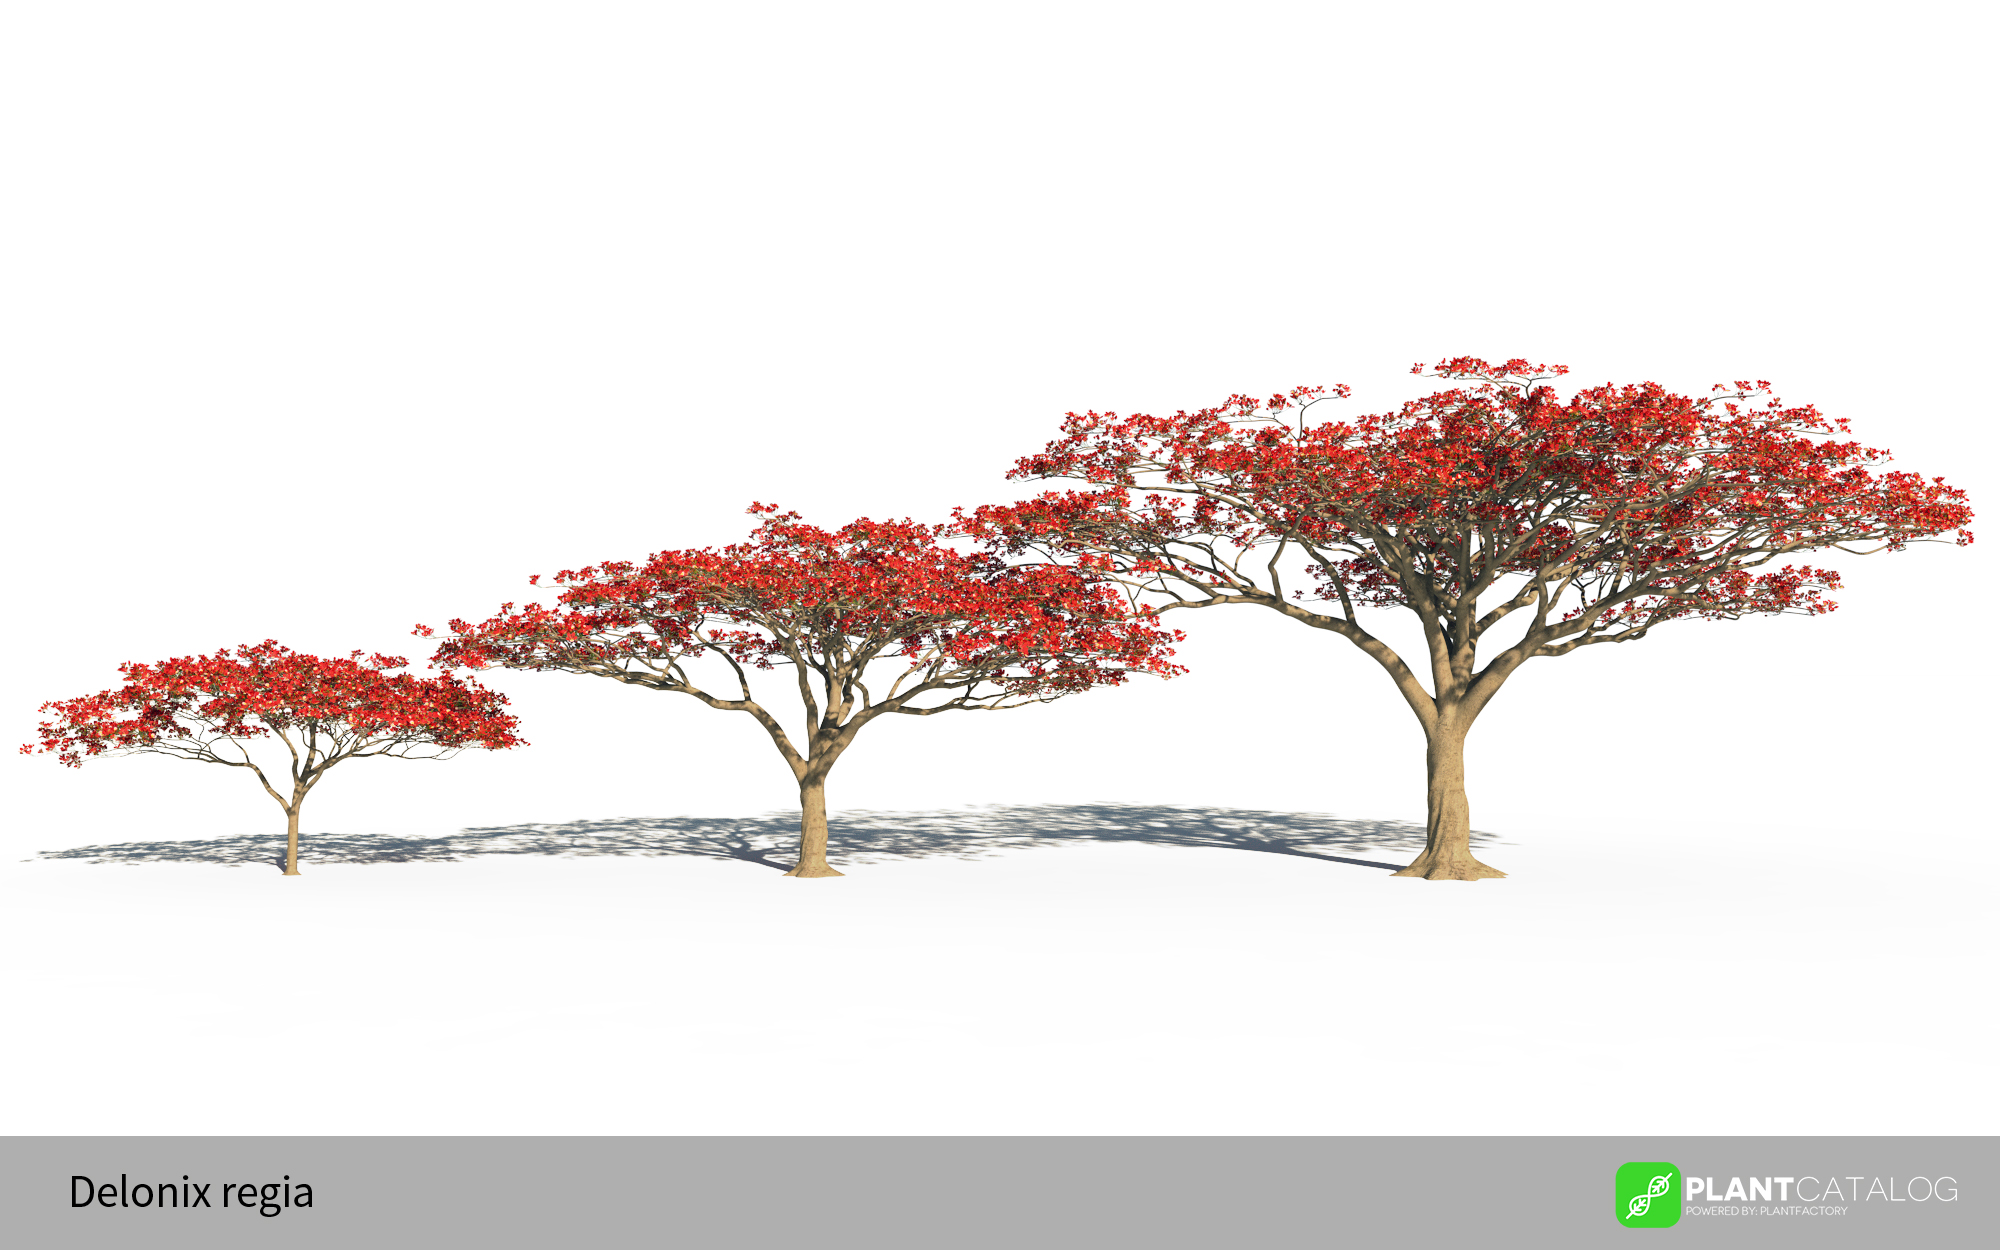 3D model of the Royal poinciana  - Delonix regia - from the PlantCatalog, rendered in VUE